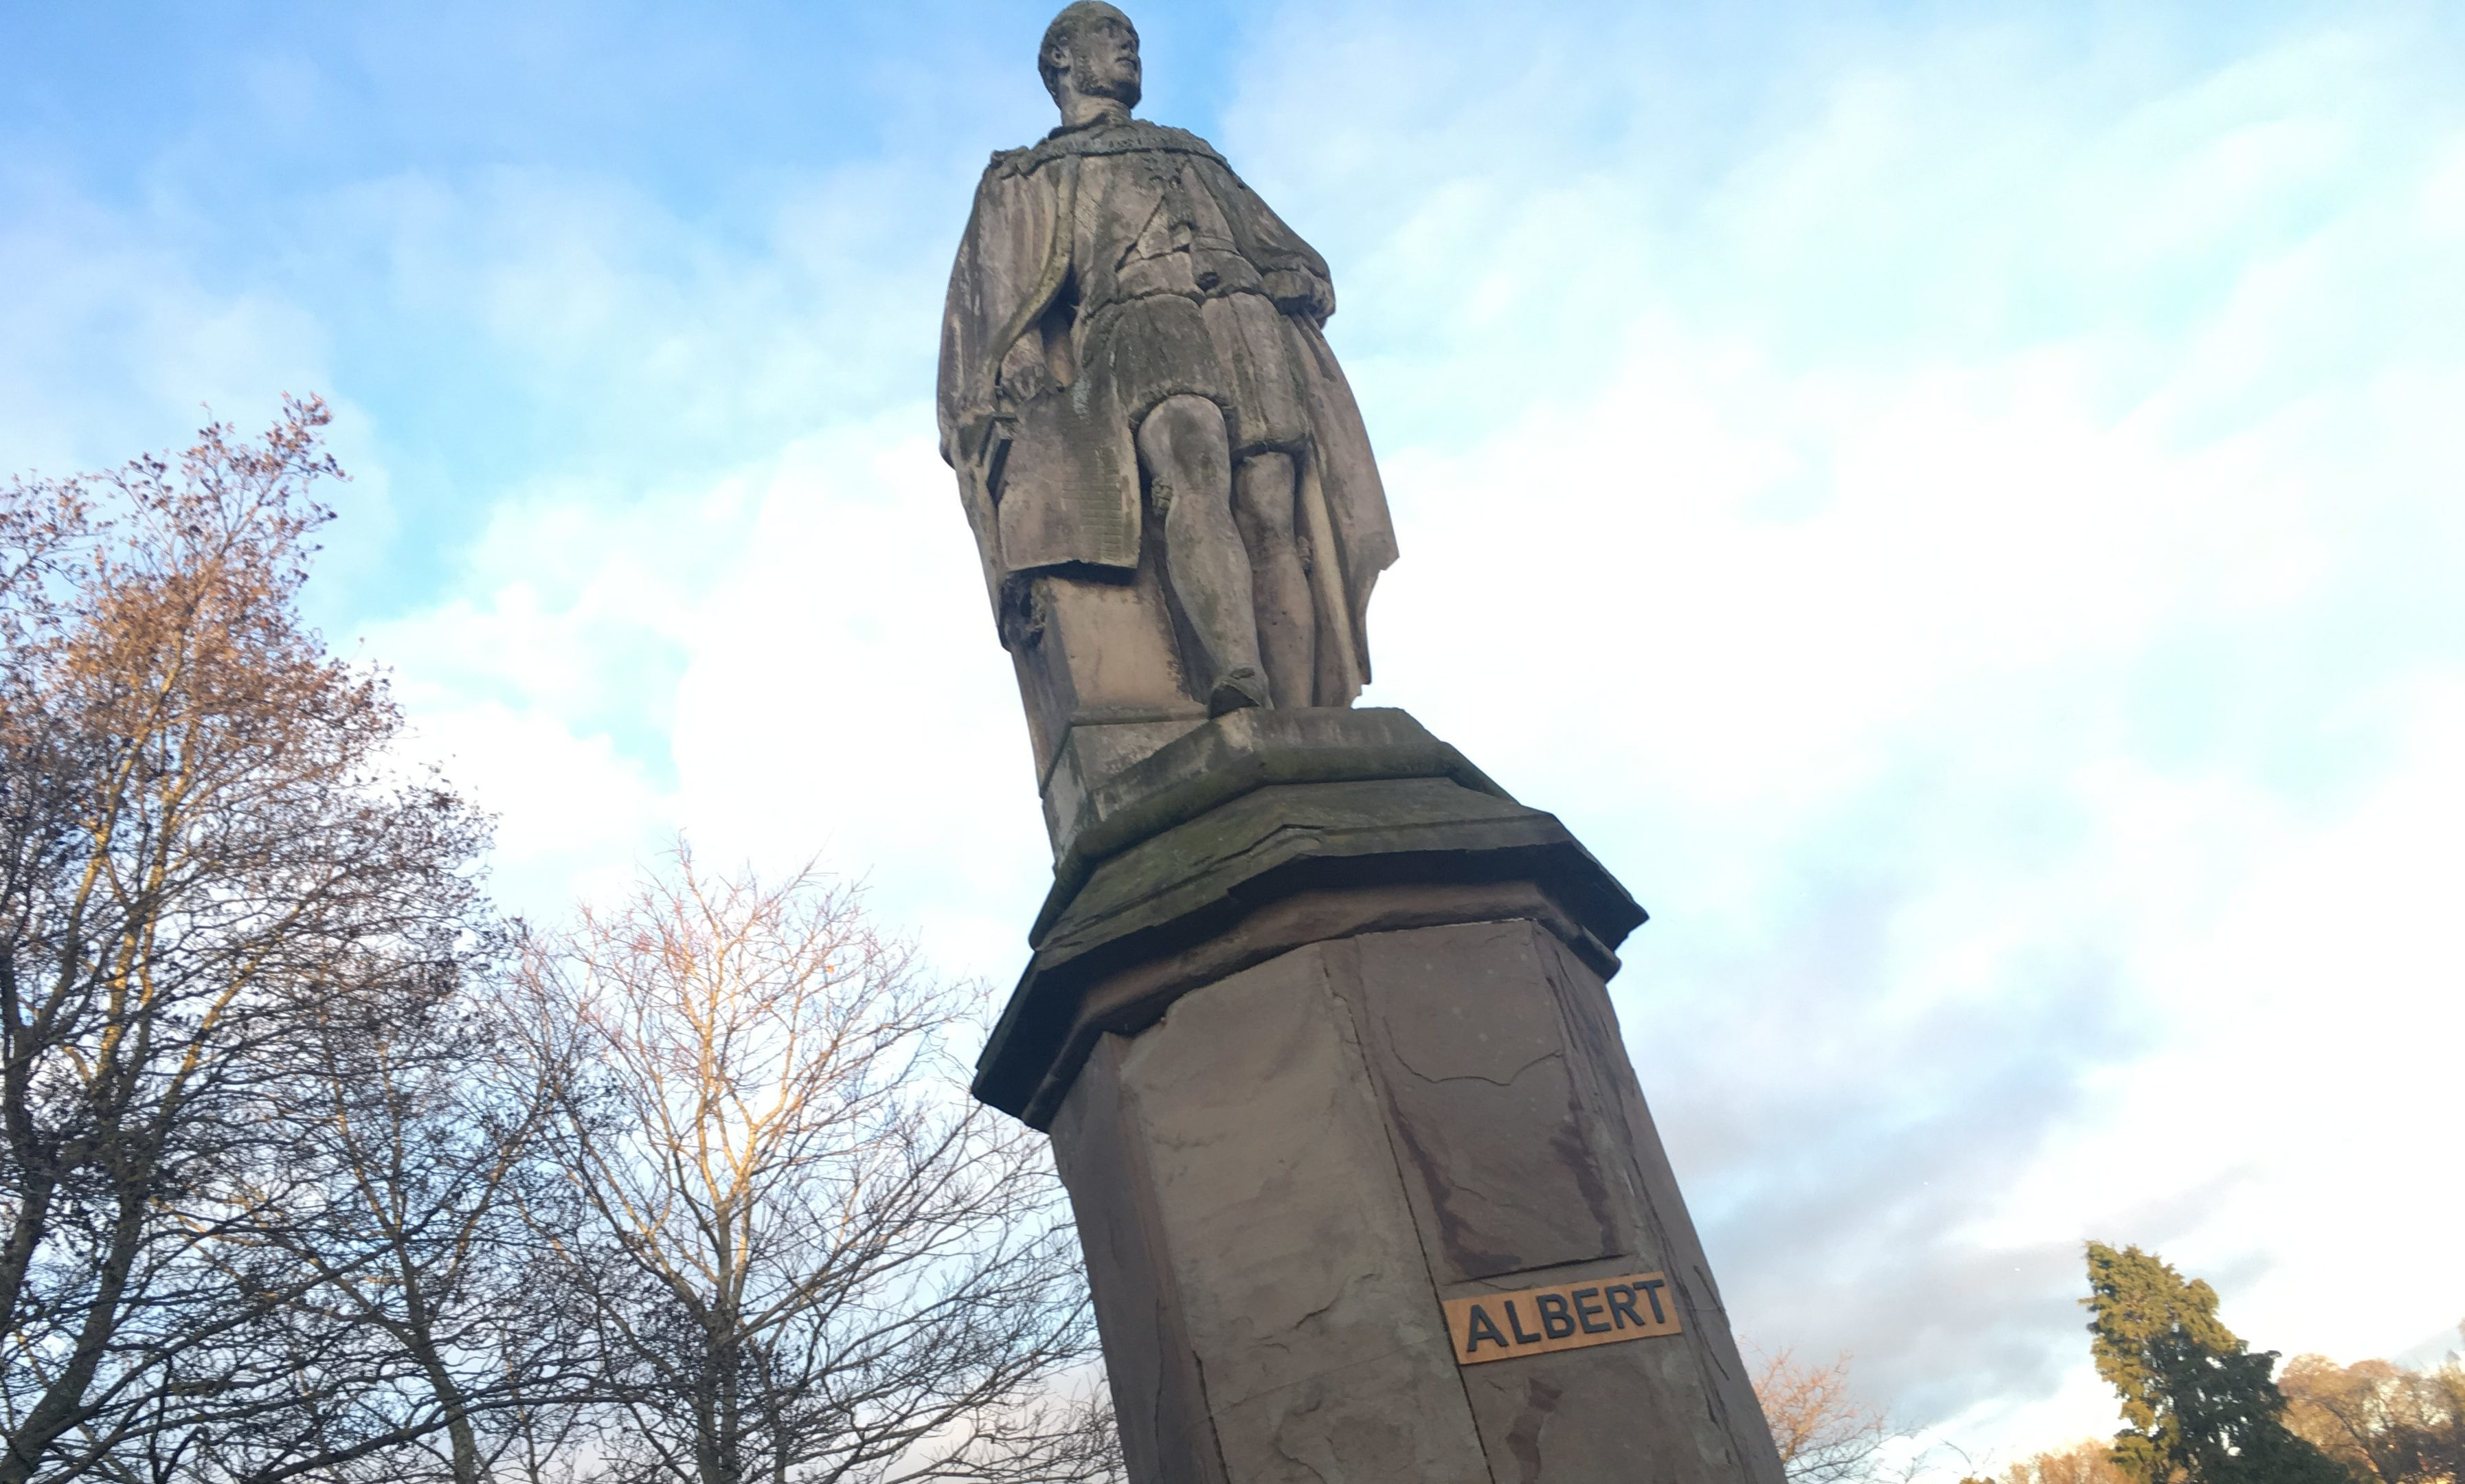 A car registration-style plate has appeared on Perth's Prince Albert statue.